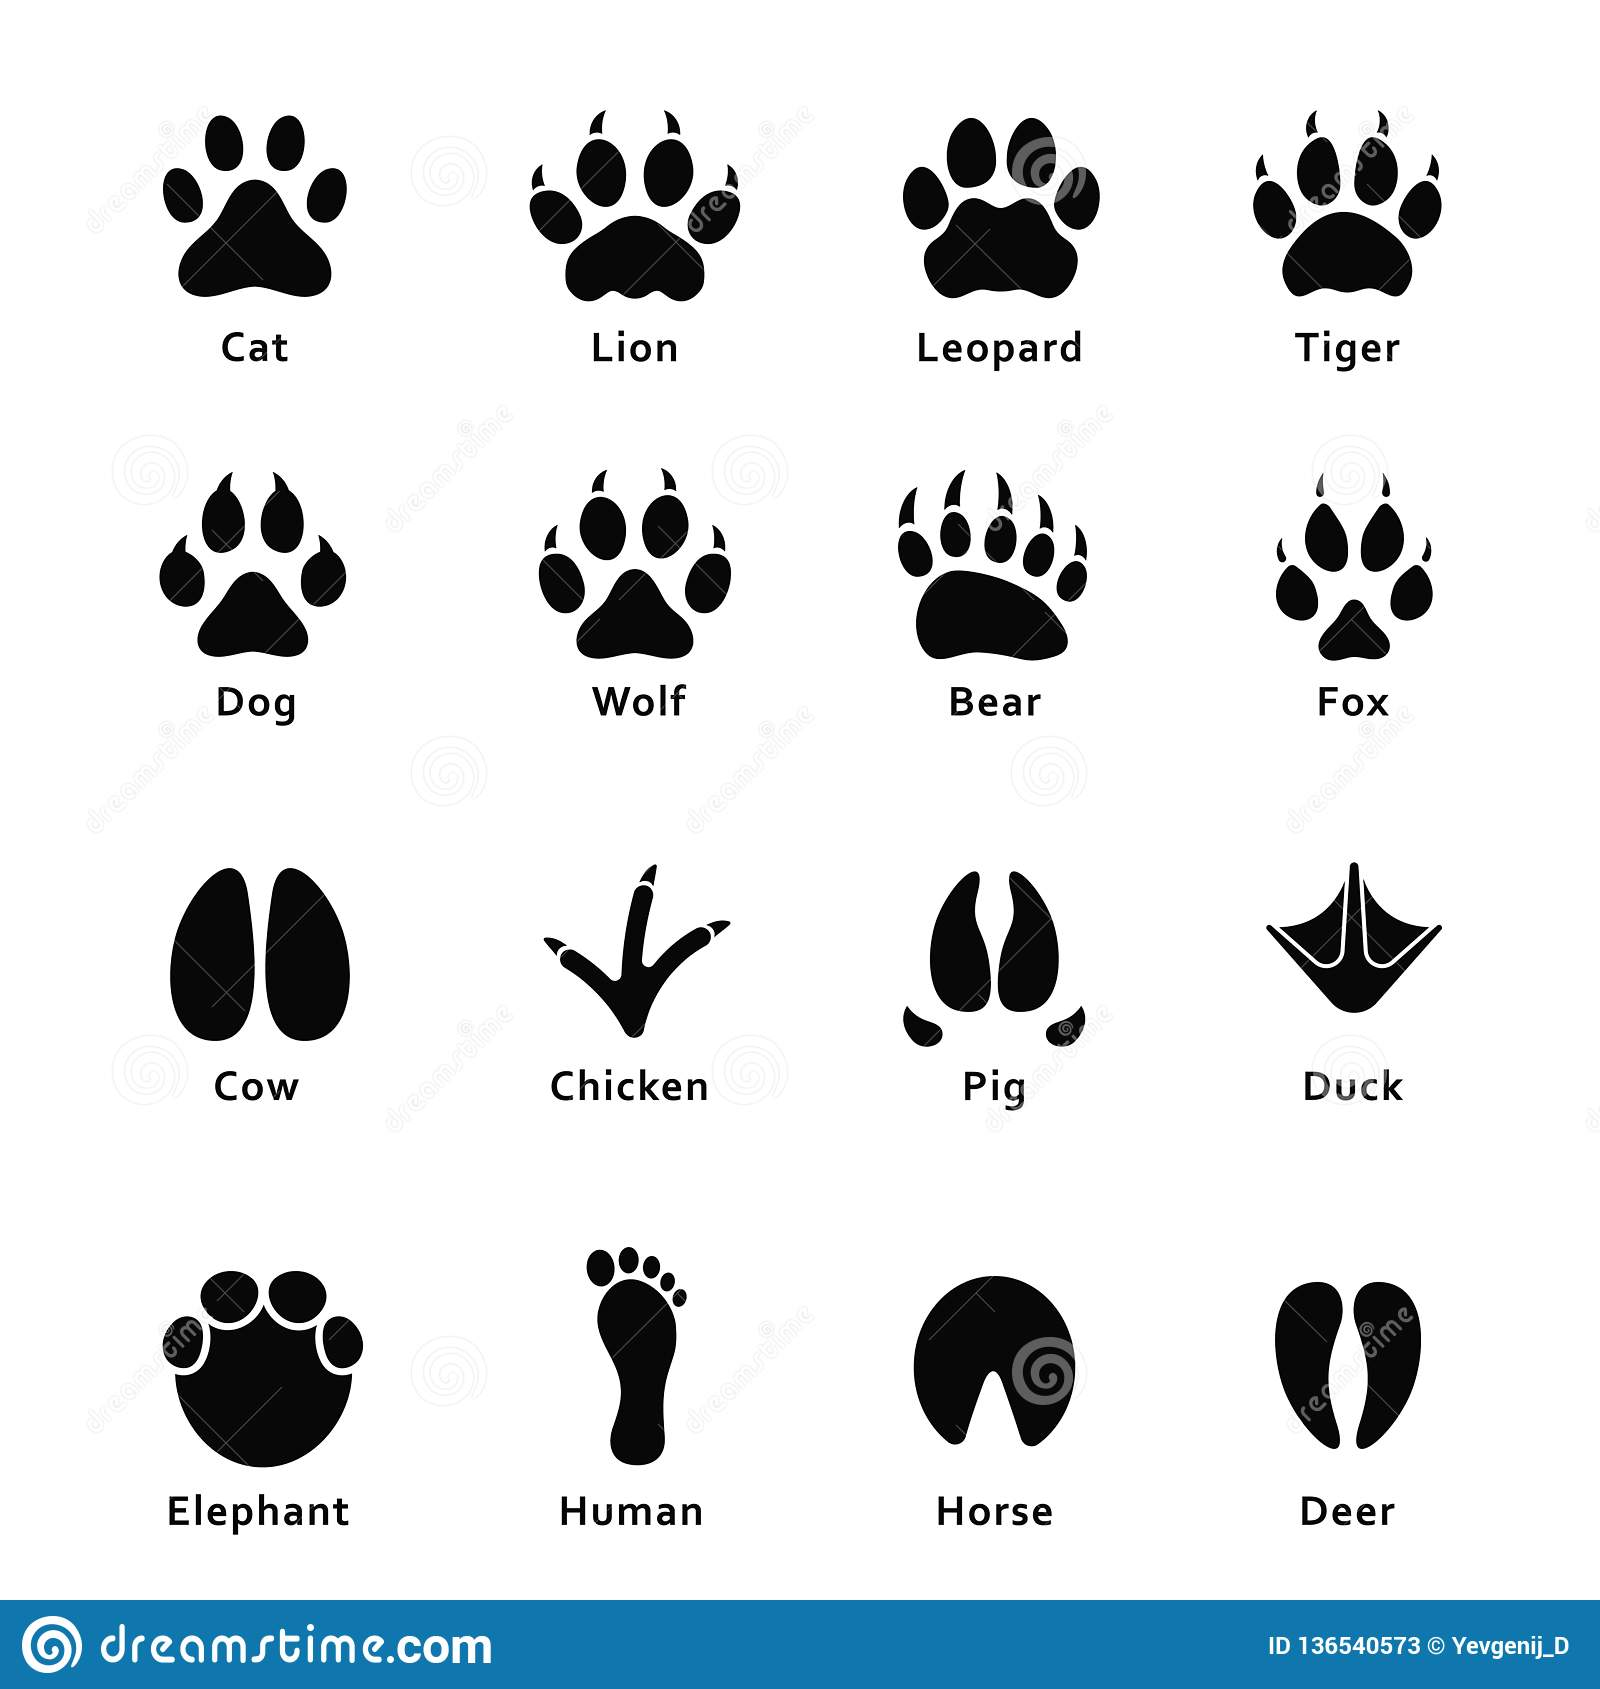 1db5cd9e04c1 Animals footprints, paw prints. Set of different animals and birds  footprints and traces. Cat and lion, tiger and bear, dog, cow, pig,  chicken, elephant, ...